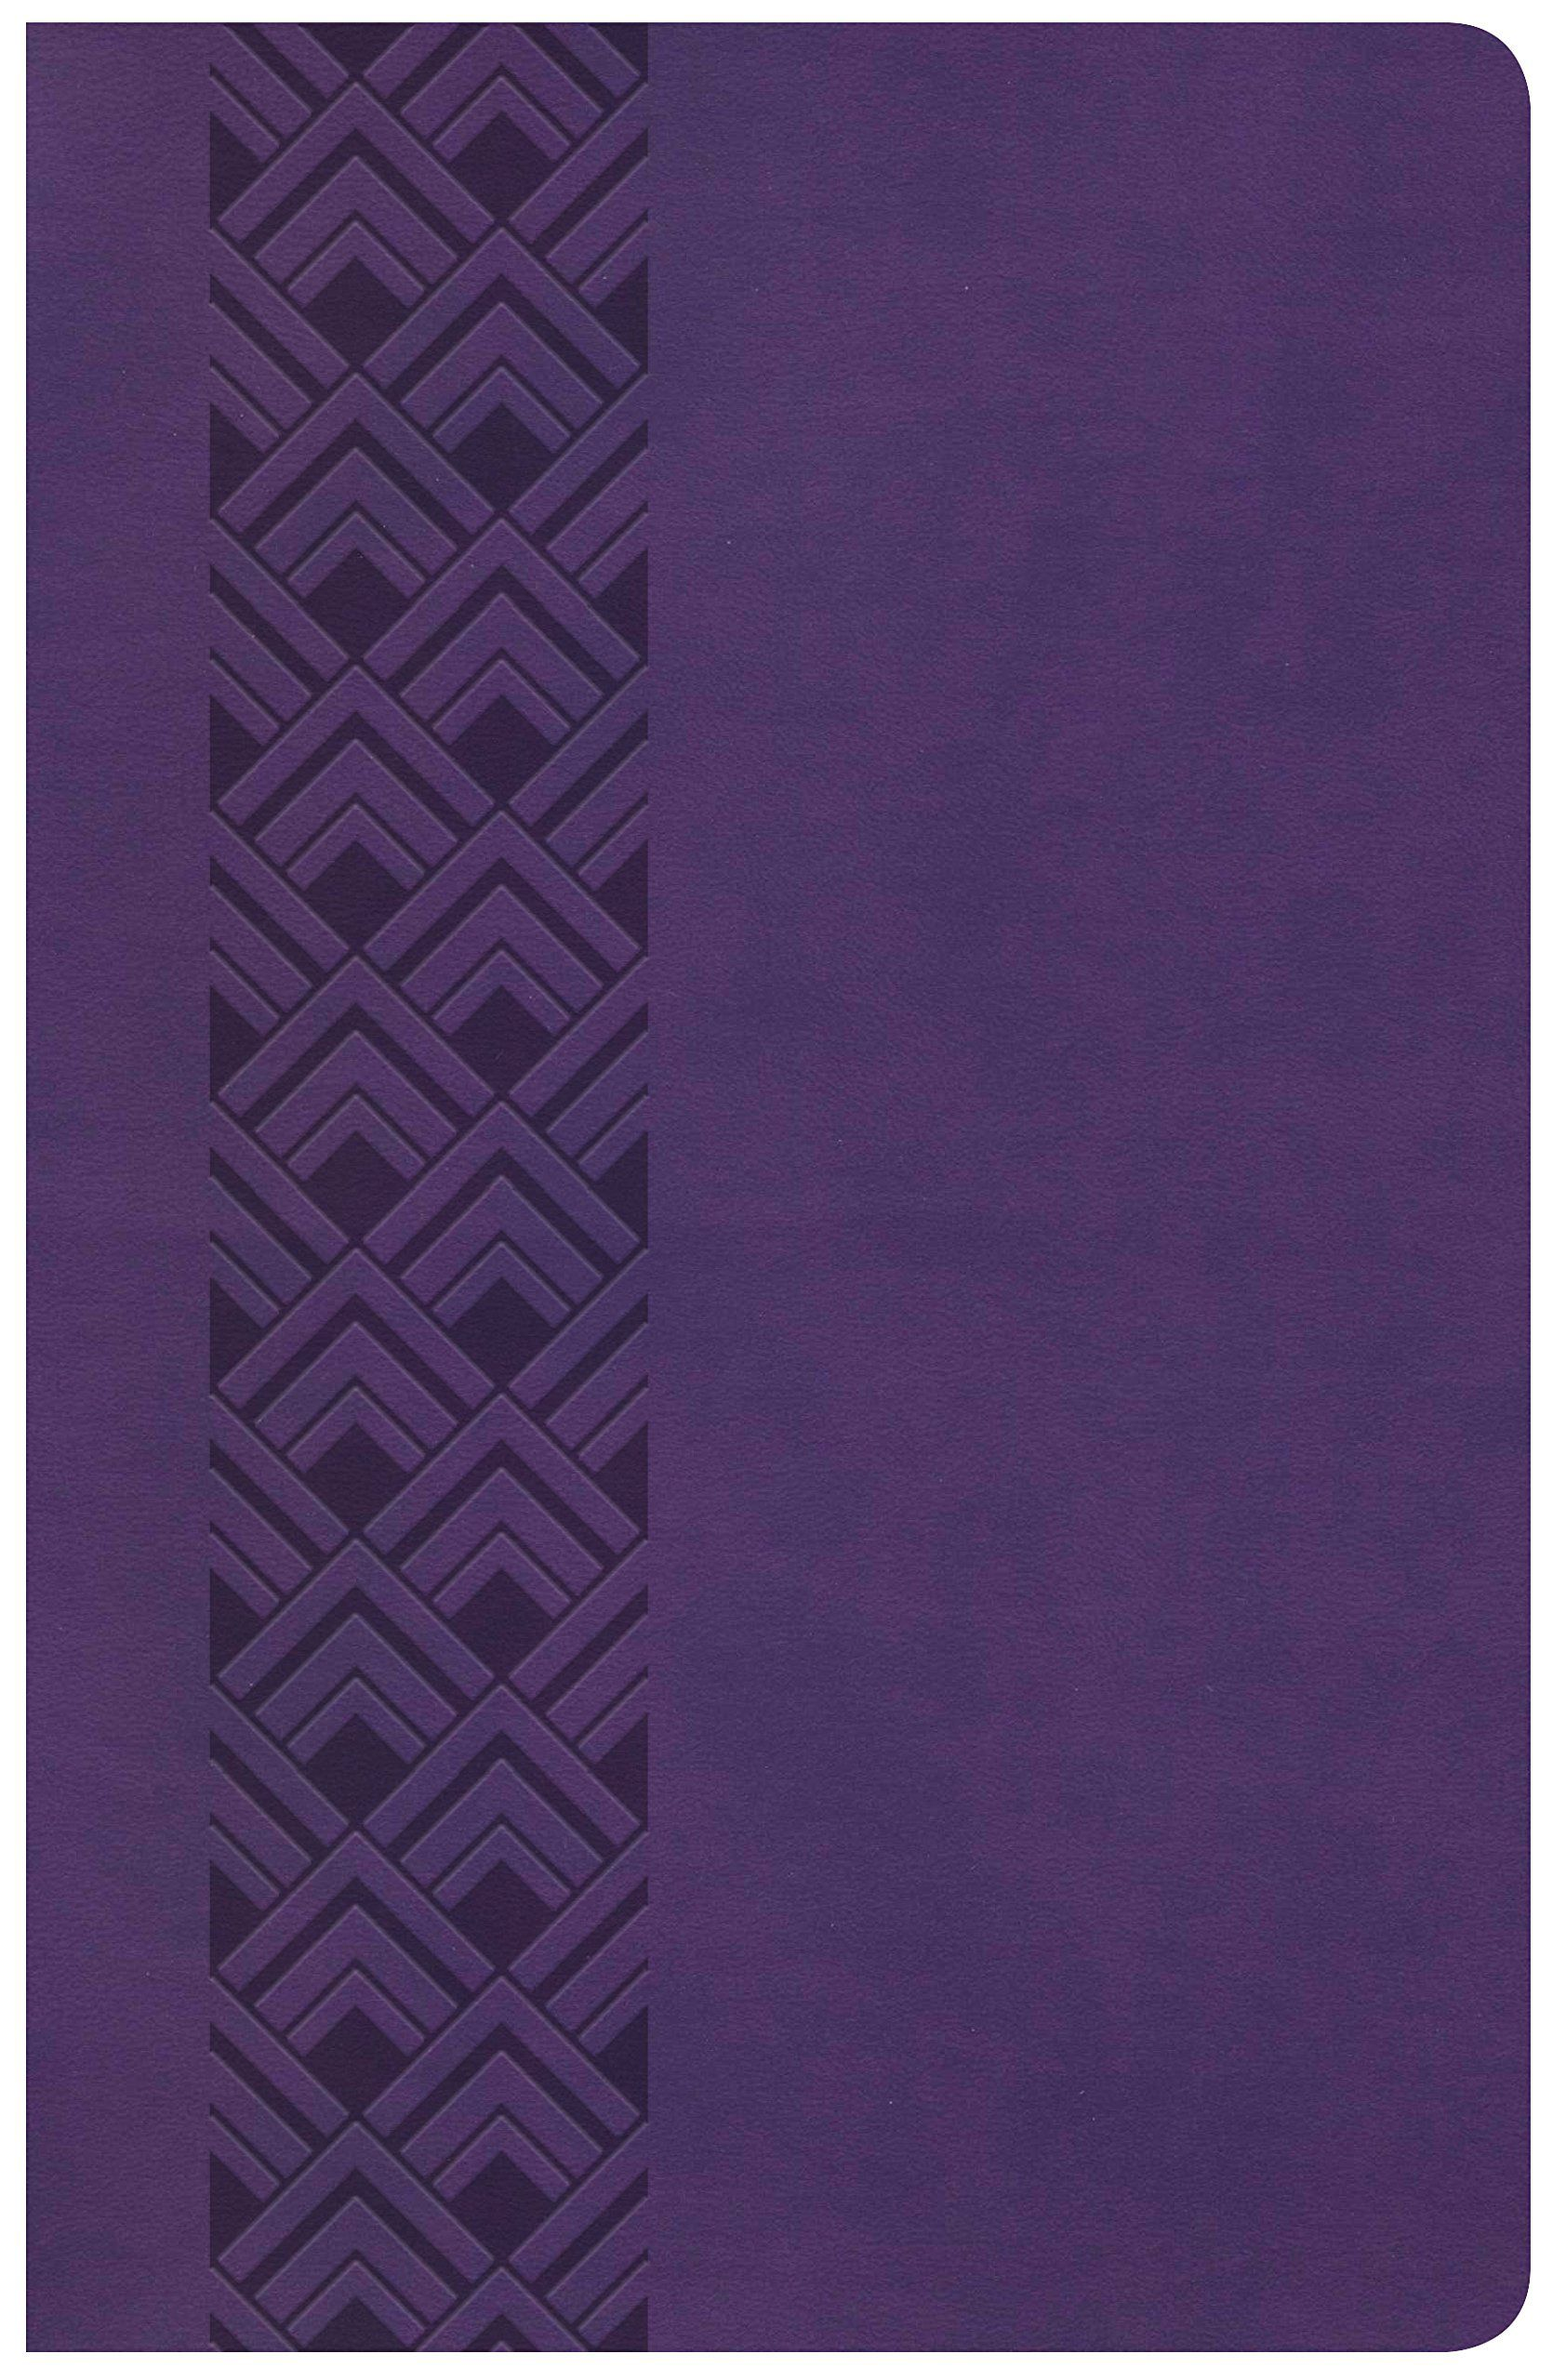 KJV Ultrathin Reference Bible, Value Edition, Purple LeatherTouch